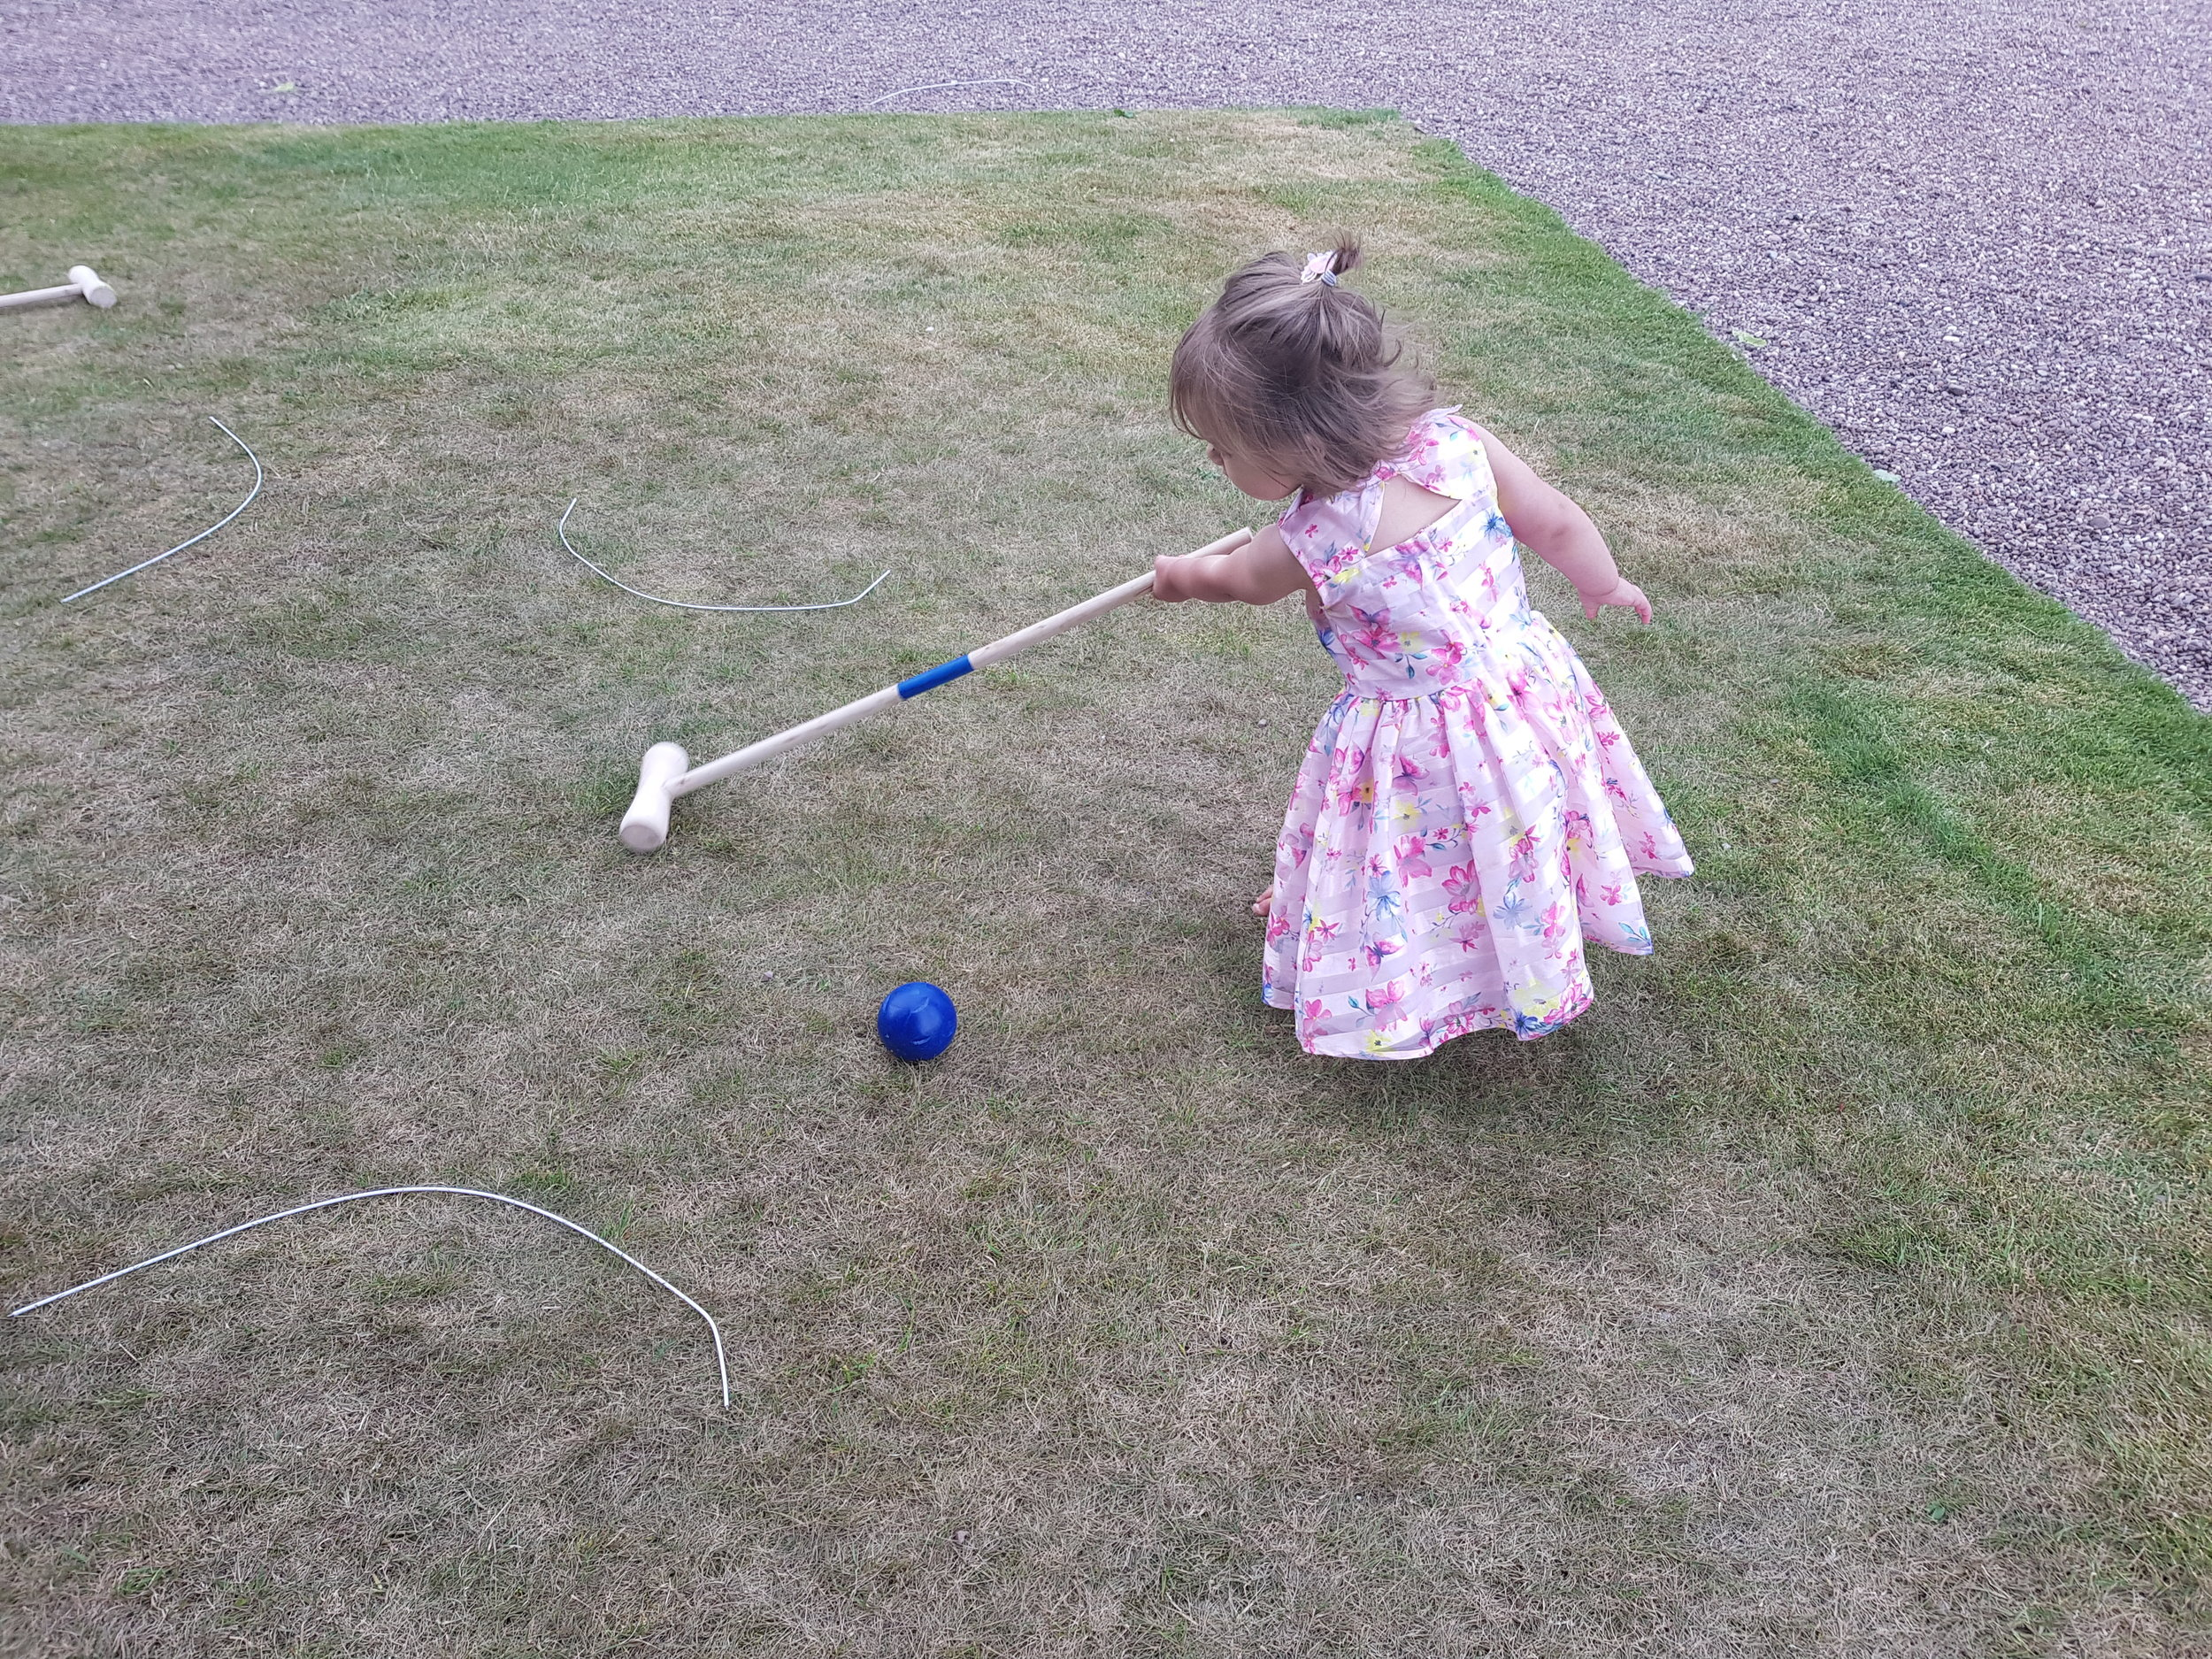 Playing croquet at the wedding